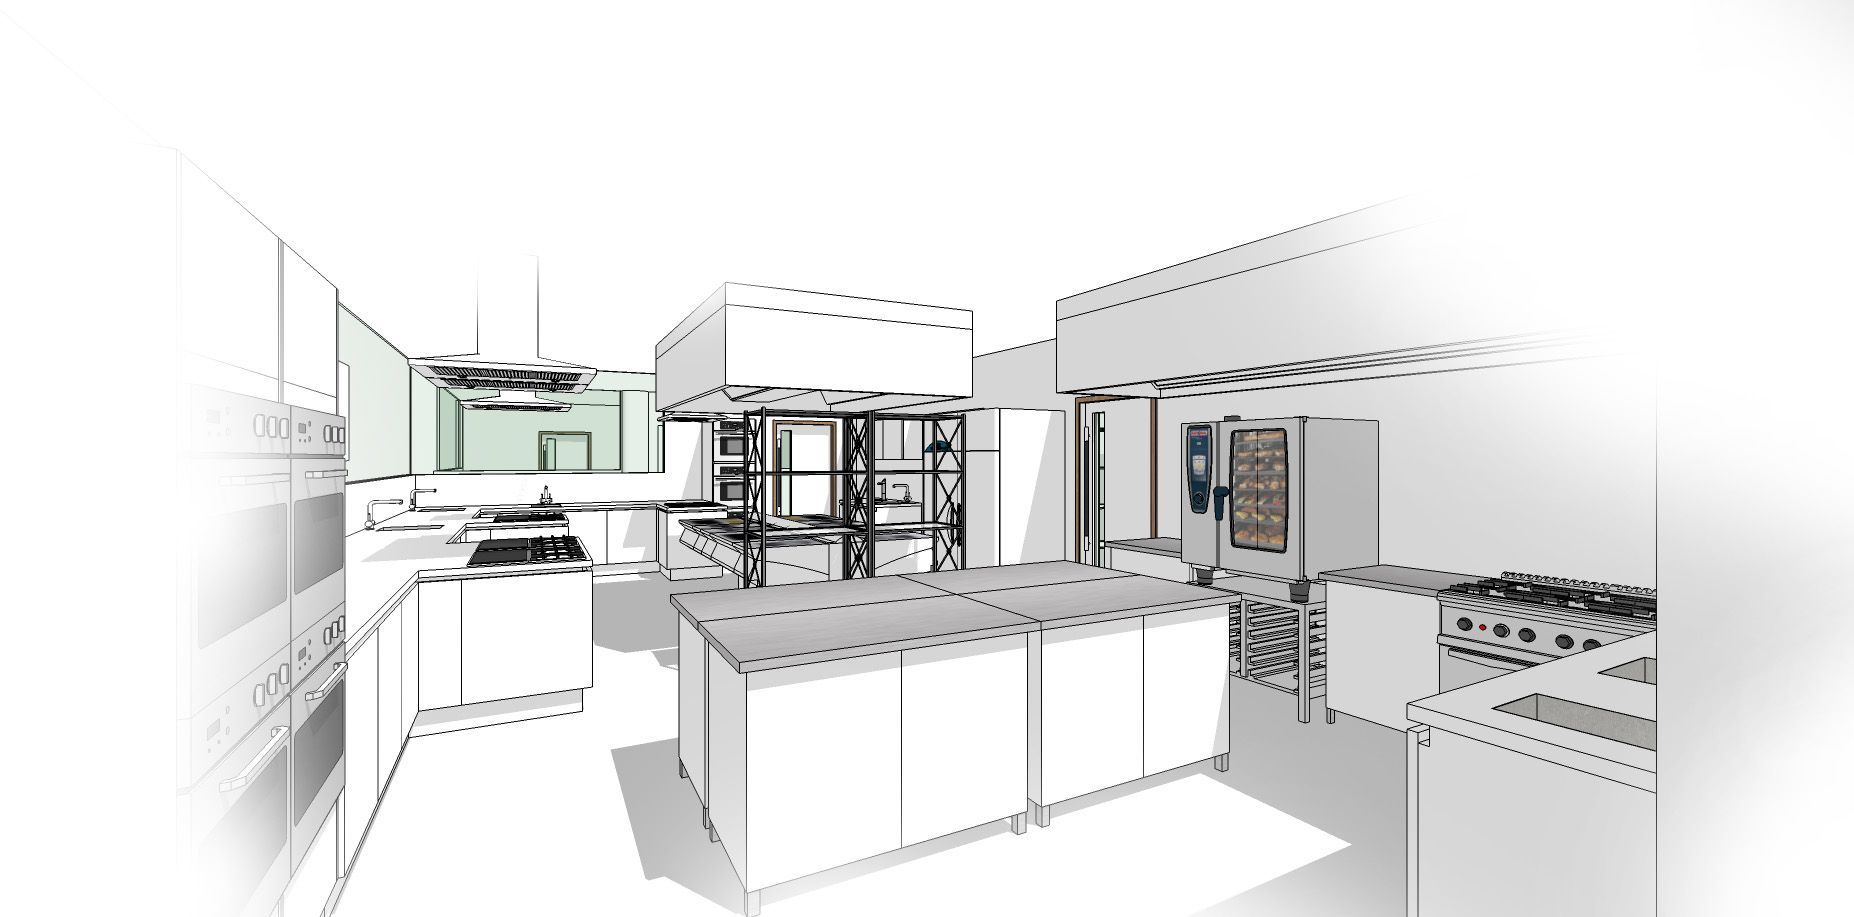 Commercial Kitchen Sketchup Conceptual Stuff Pinterest